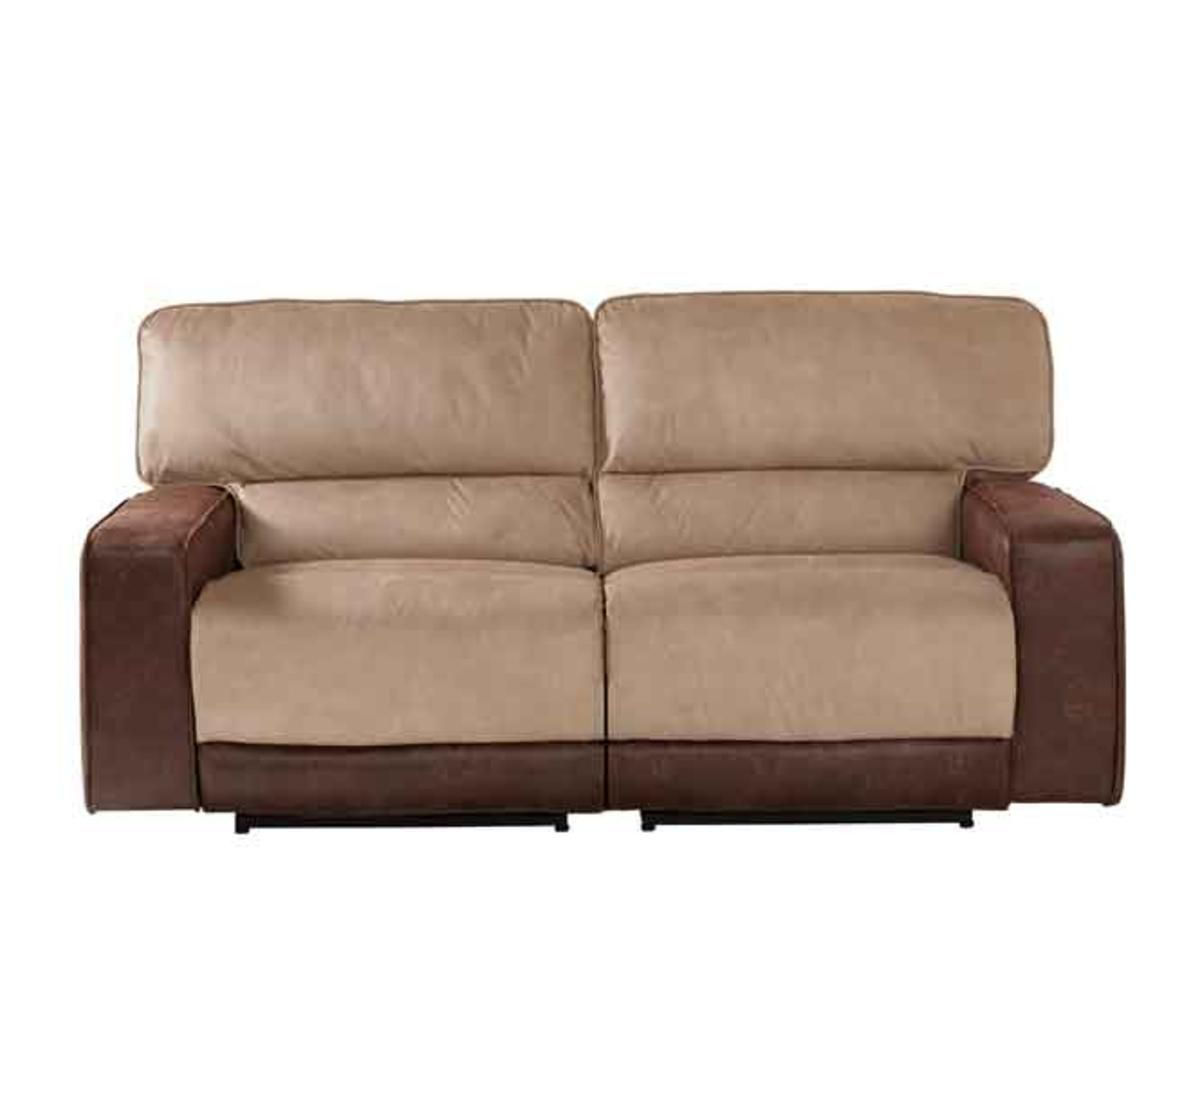 Pleasing Pasadena 2 Piece Reclining Loveseat Pabps2019 Chair Design Images Pabps2019Com